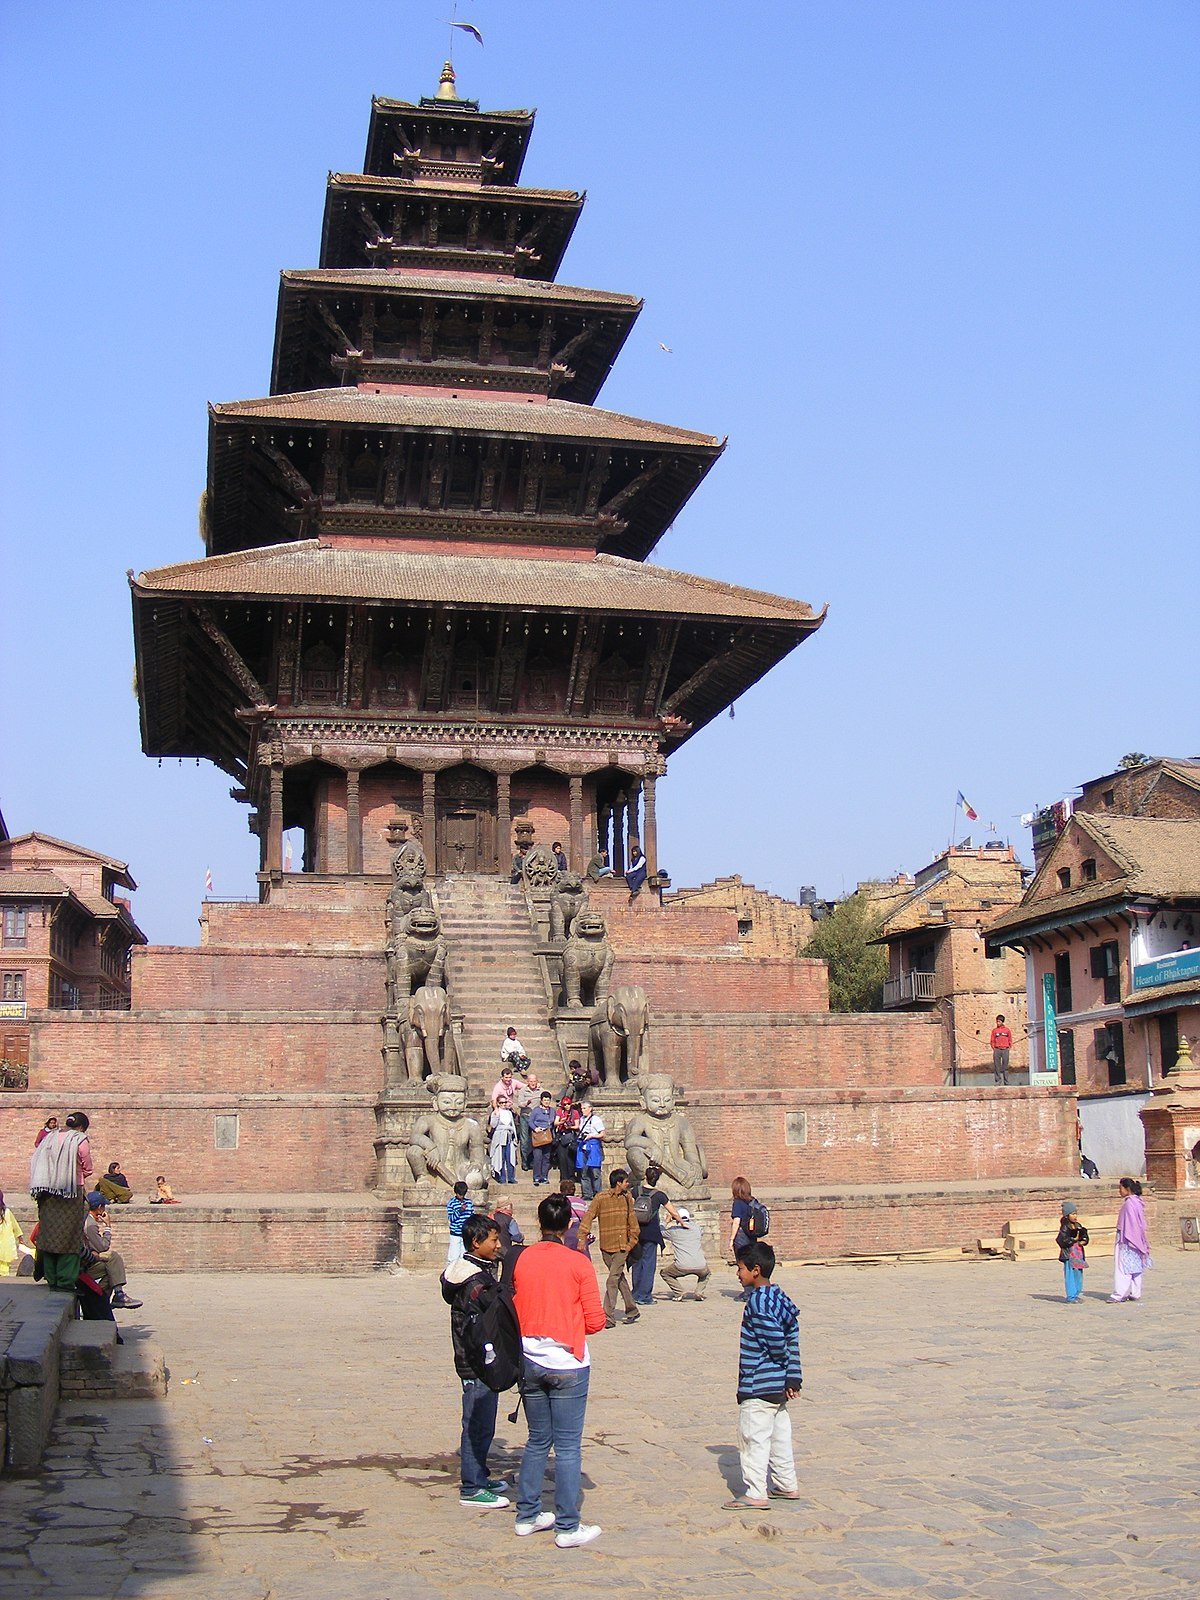 newars a cultural identity Newar - history and cultural relations  this led to the strengthening of newari identity  many newars still retain their culture and language.